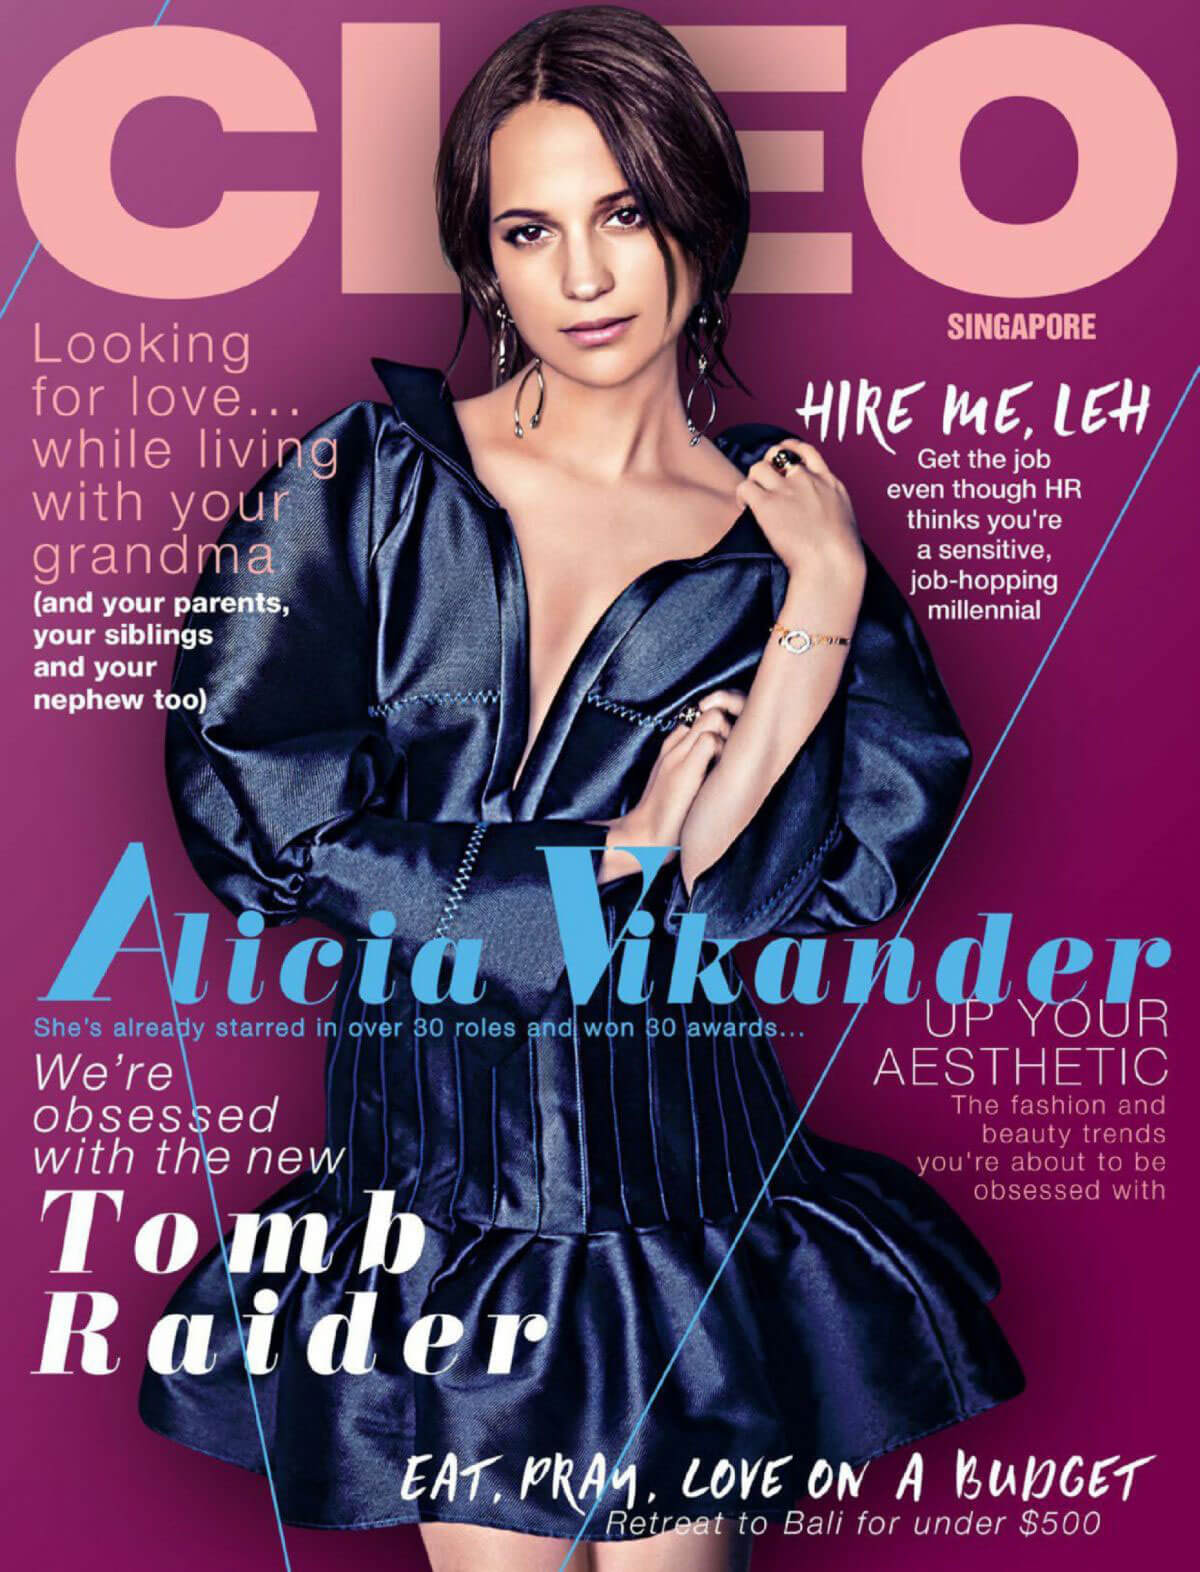 Alicia Vikander Stills in Cleo Magazine, Singapore March 2018 Issue